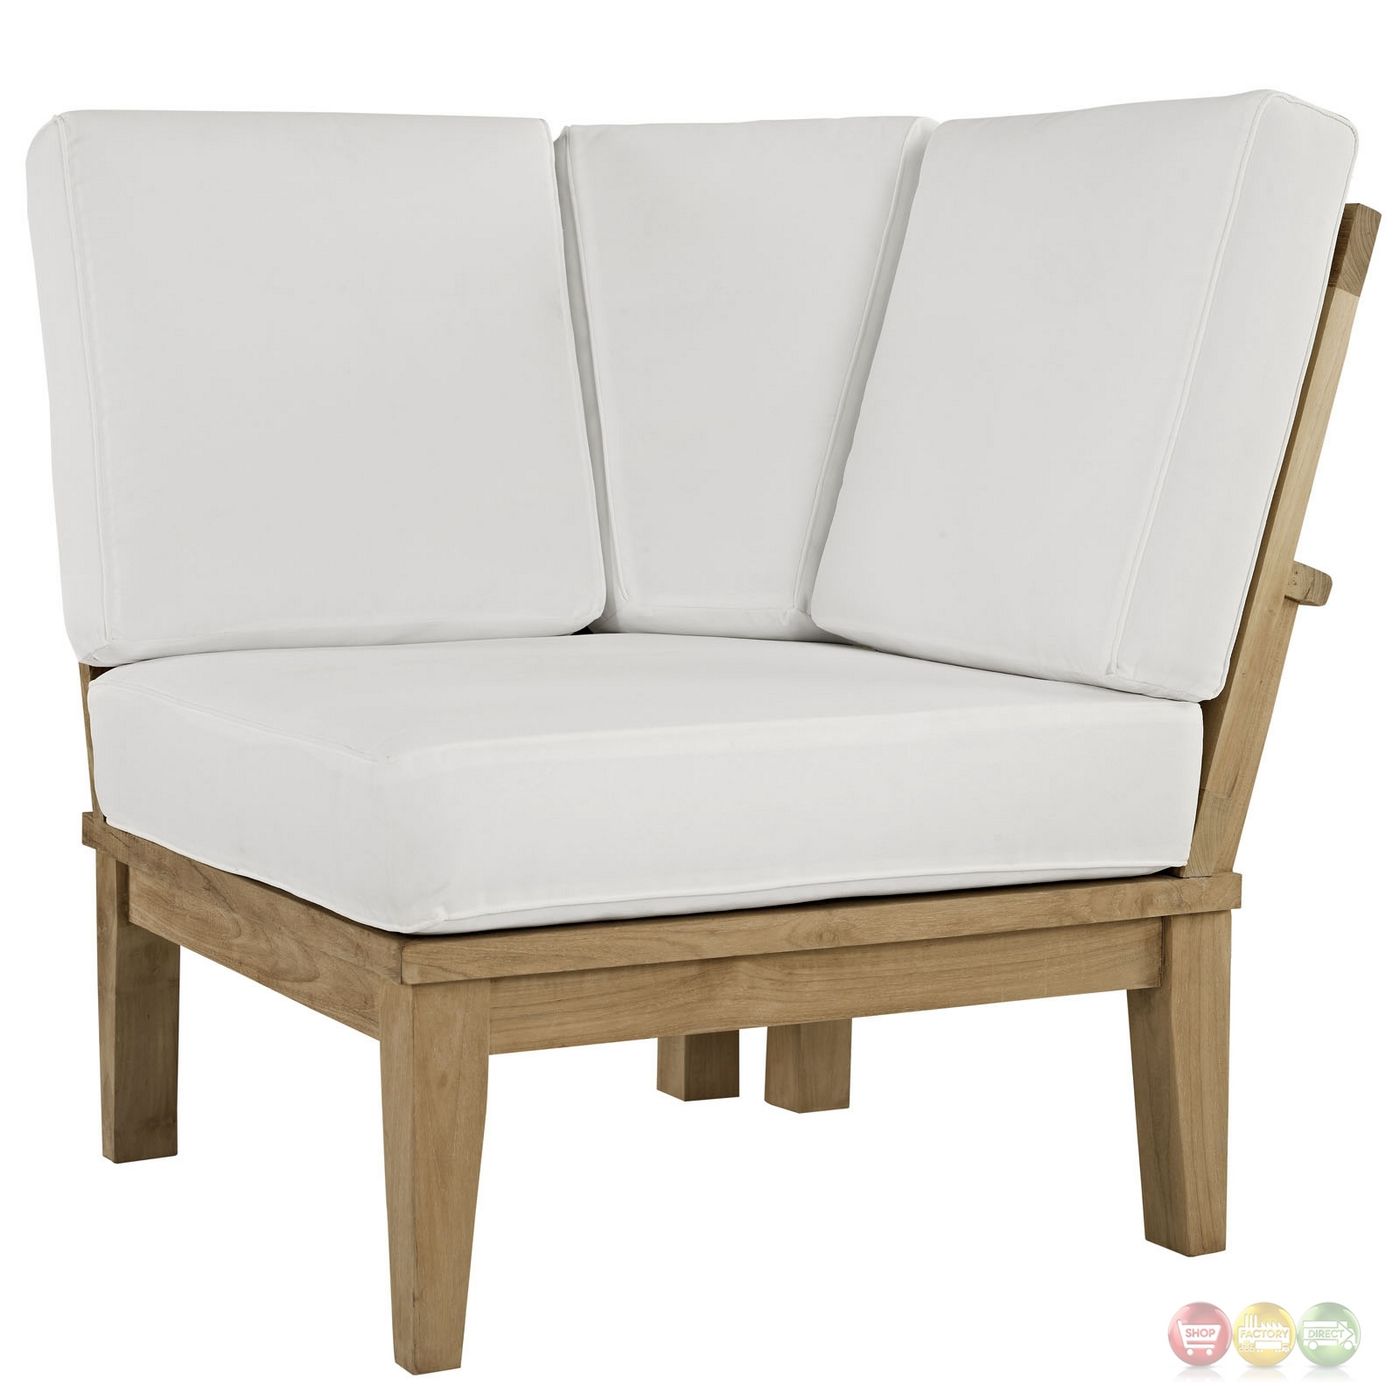 Marina natural teak wood outdoor patio sofa w upholstered for Outdoor sofa